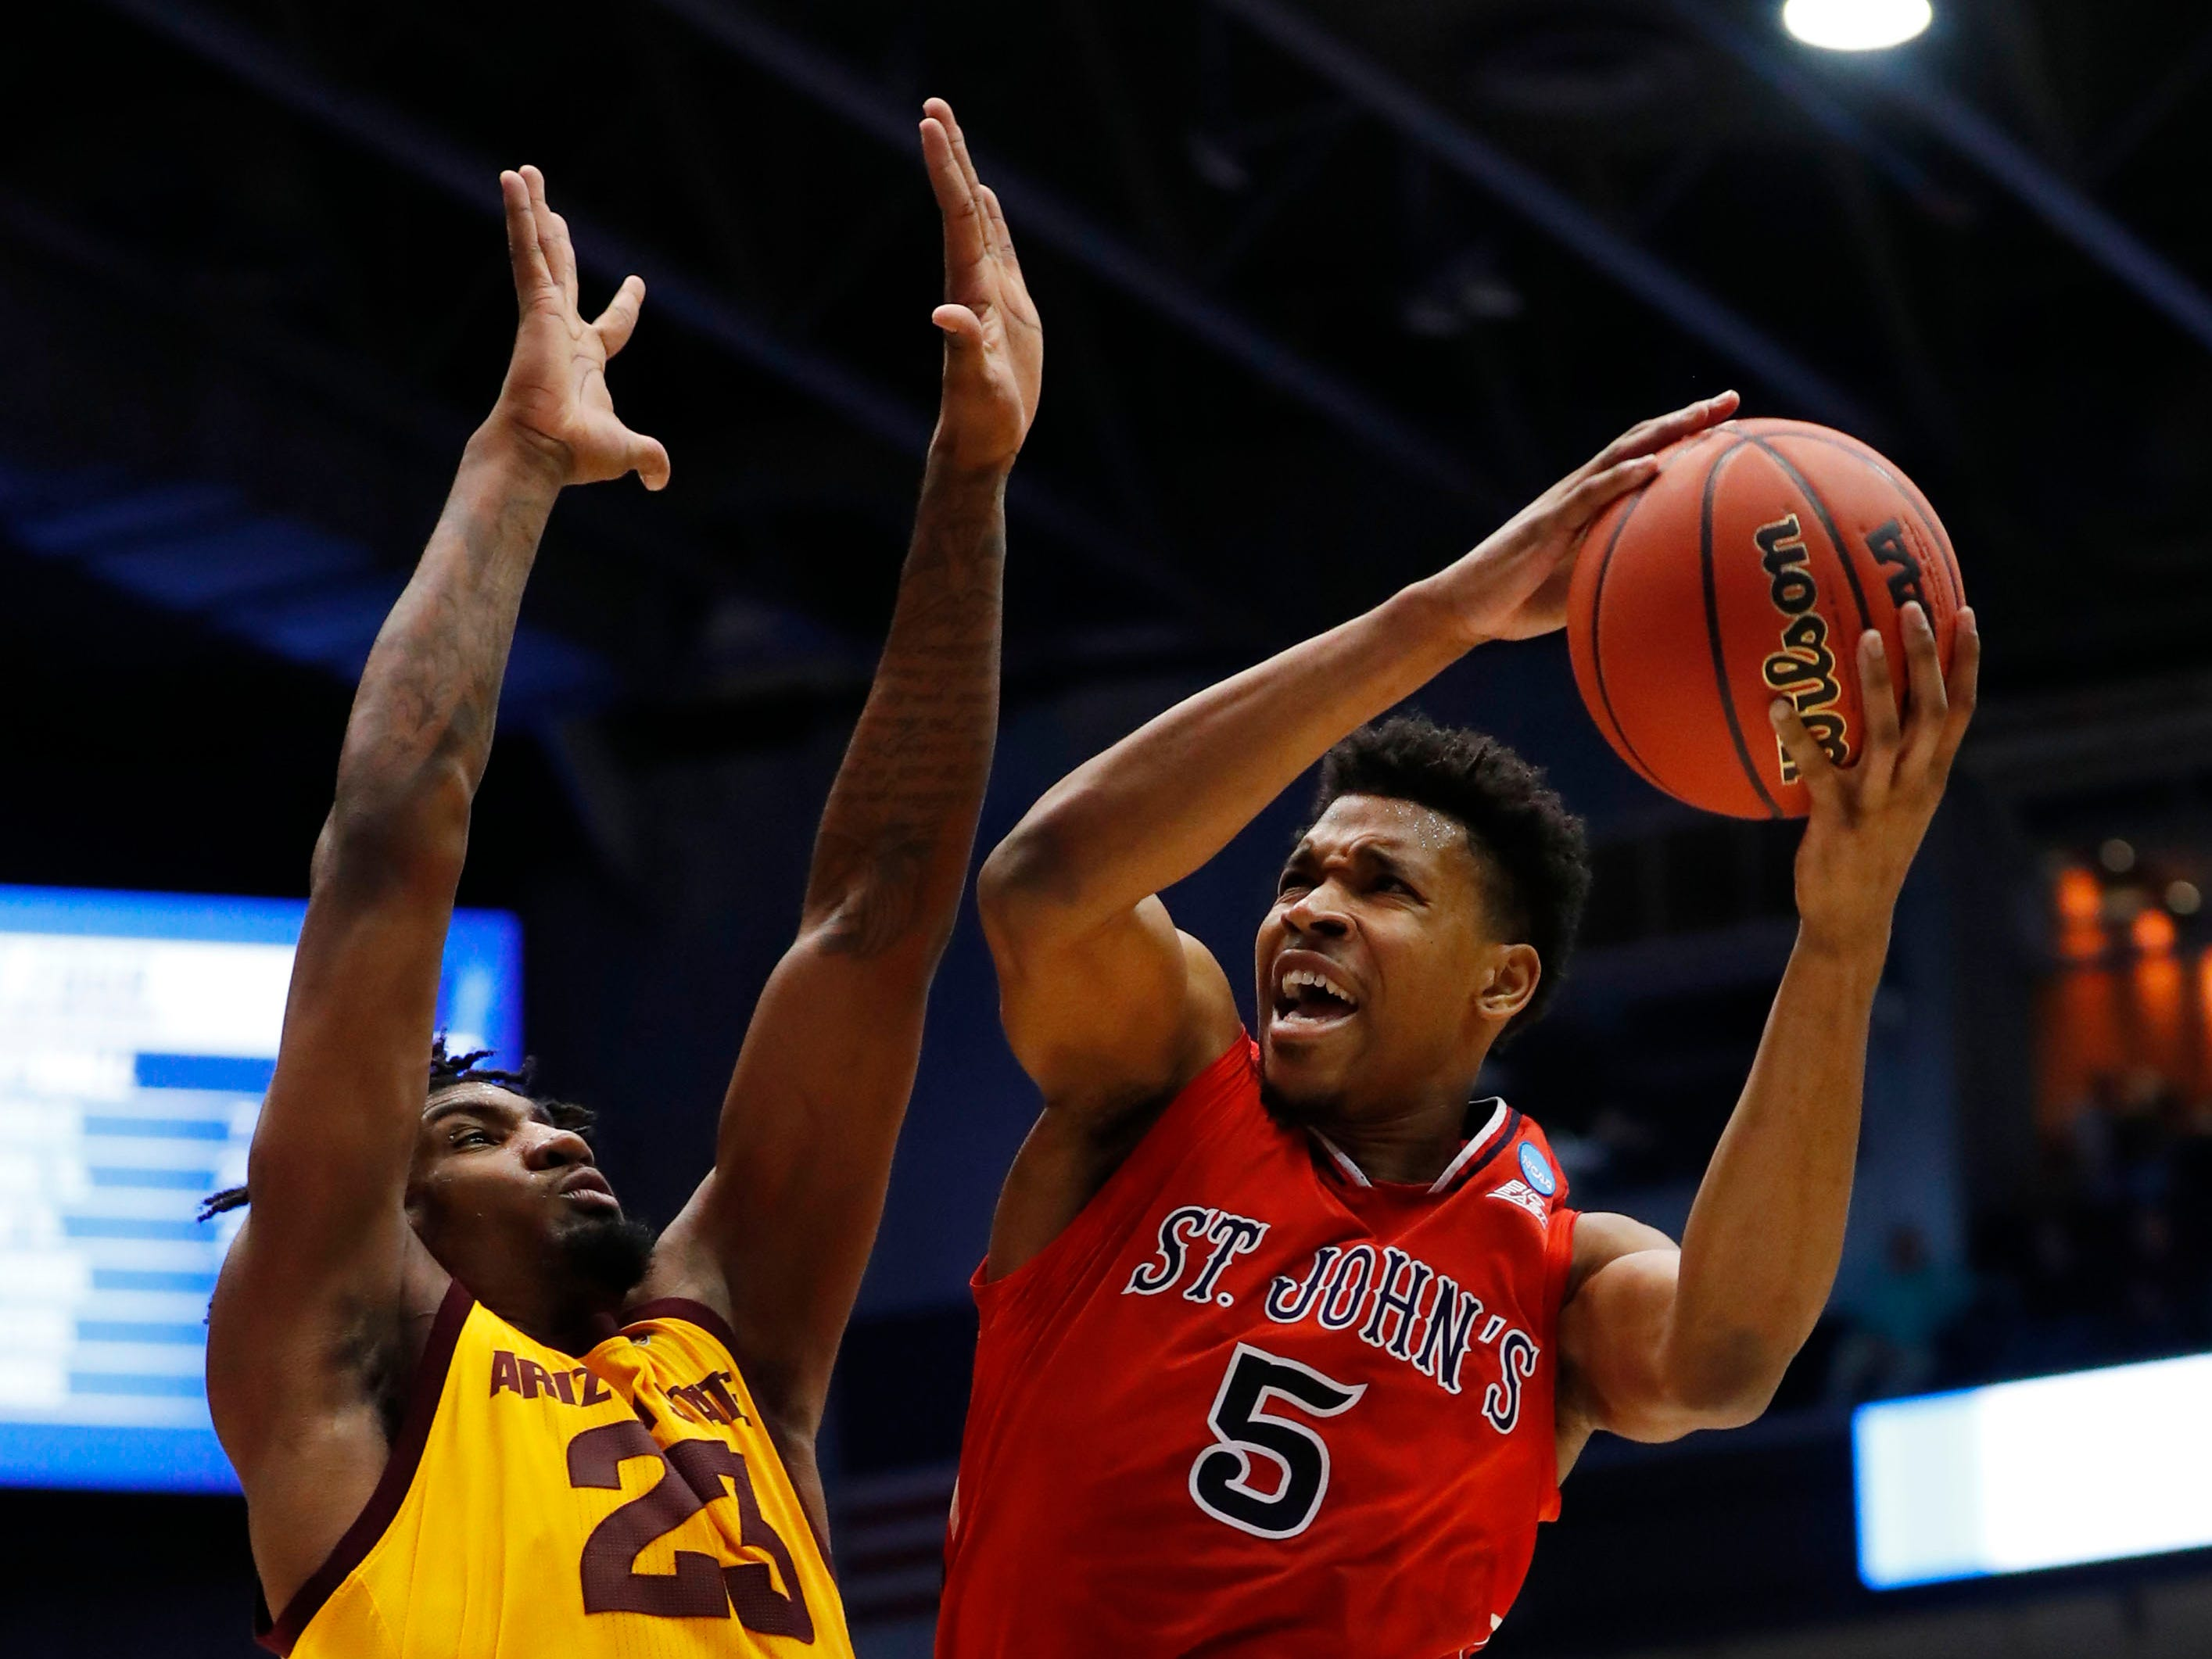 Mar 20, 2019; Dayton, OH, USA; St. John's Red Storm guard Justin Simon (5) goes to the basket defended by Arizona State Sun Devils forward Romello White (23) in the first half in the First Four of the 2019 NCAA Tournament at Dayton Arena. Mandatory Credit: Rick Osentoski-USA TODAY Sports